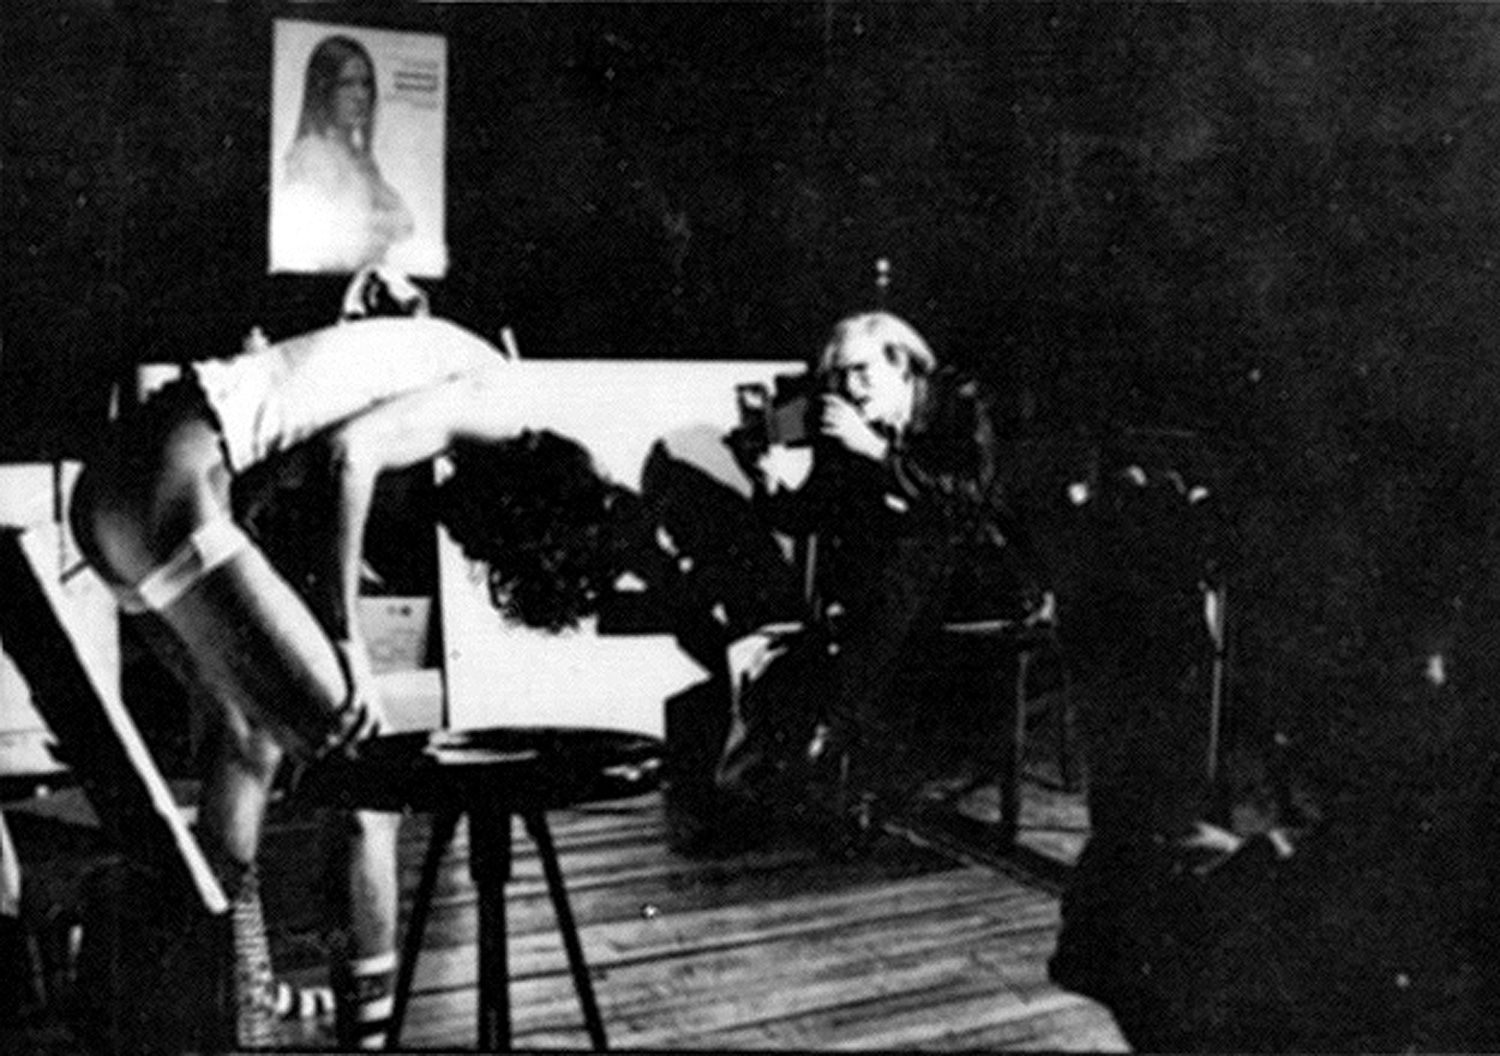 """Neke Carson painting his """"rectal realist"""" portrait of Andy Warhol, 1972. Photo by Anton Perich"""